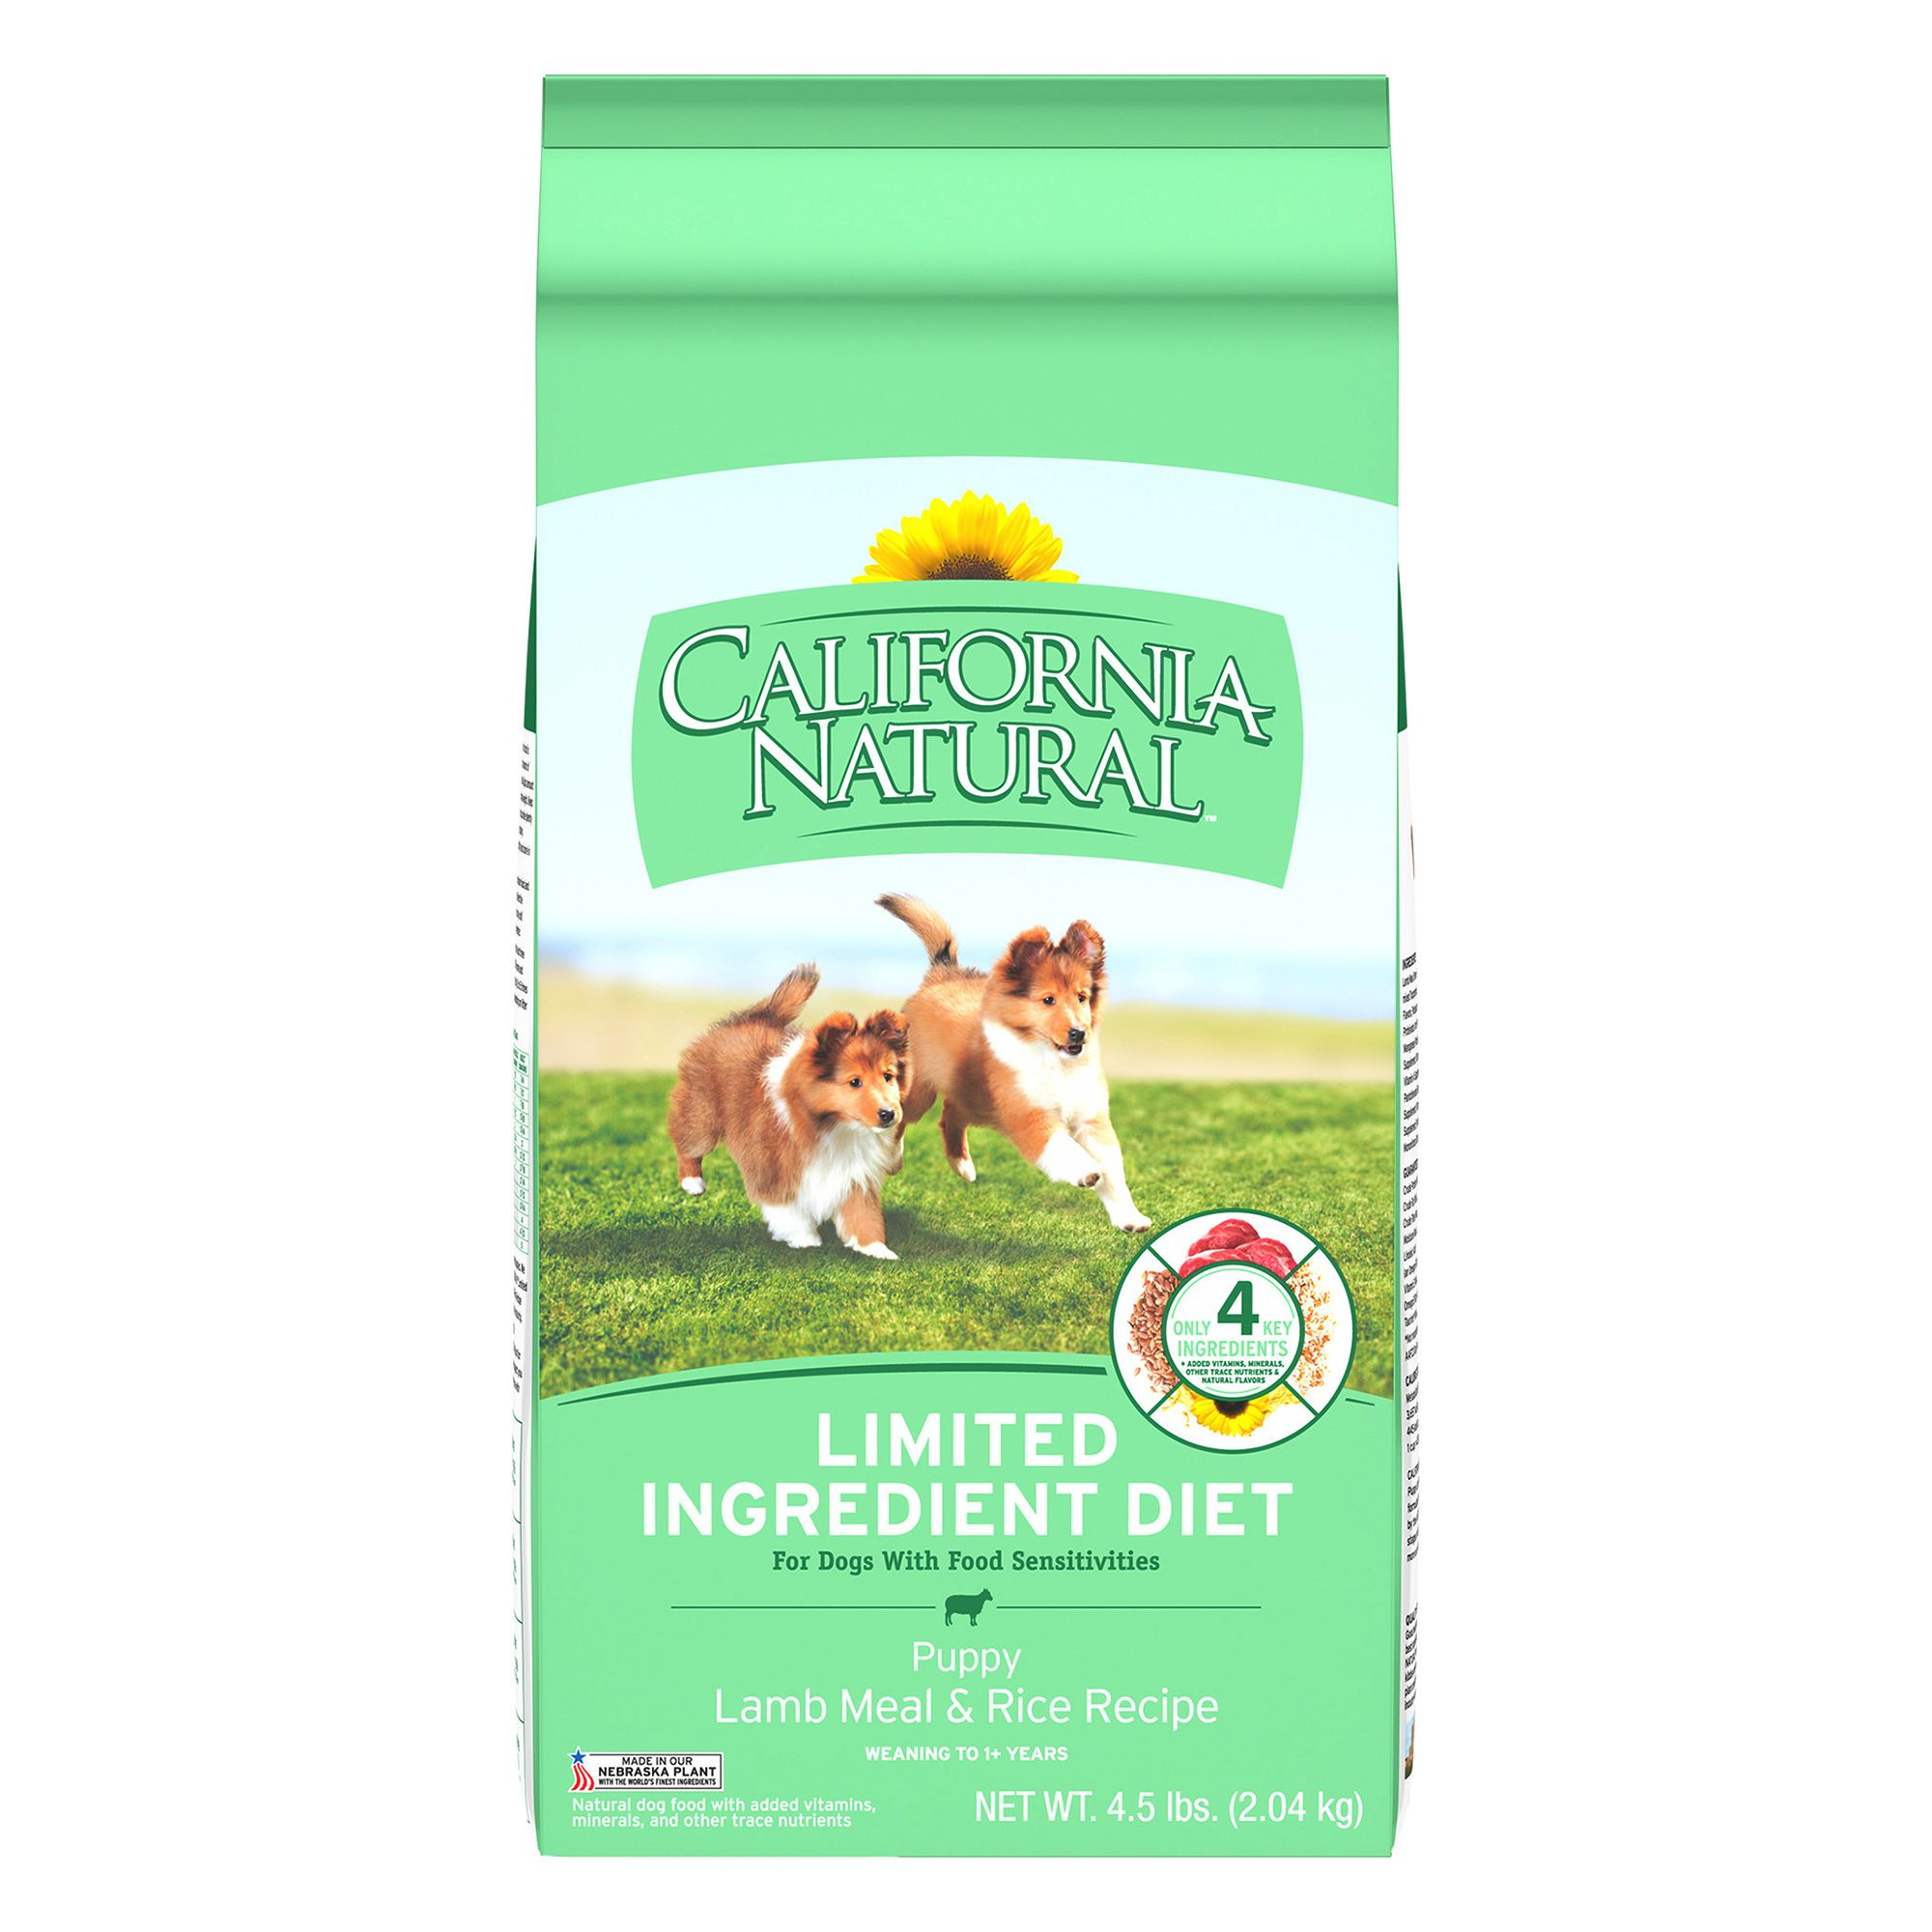 California Natural Limited Ingredient Diet Puppy Food Natural Lamb Meal And Rice Size 4.5 Lb